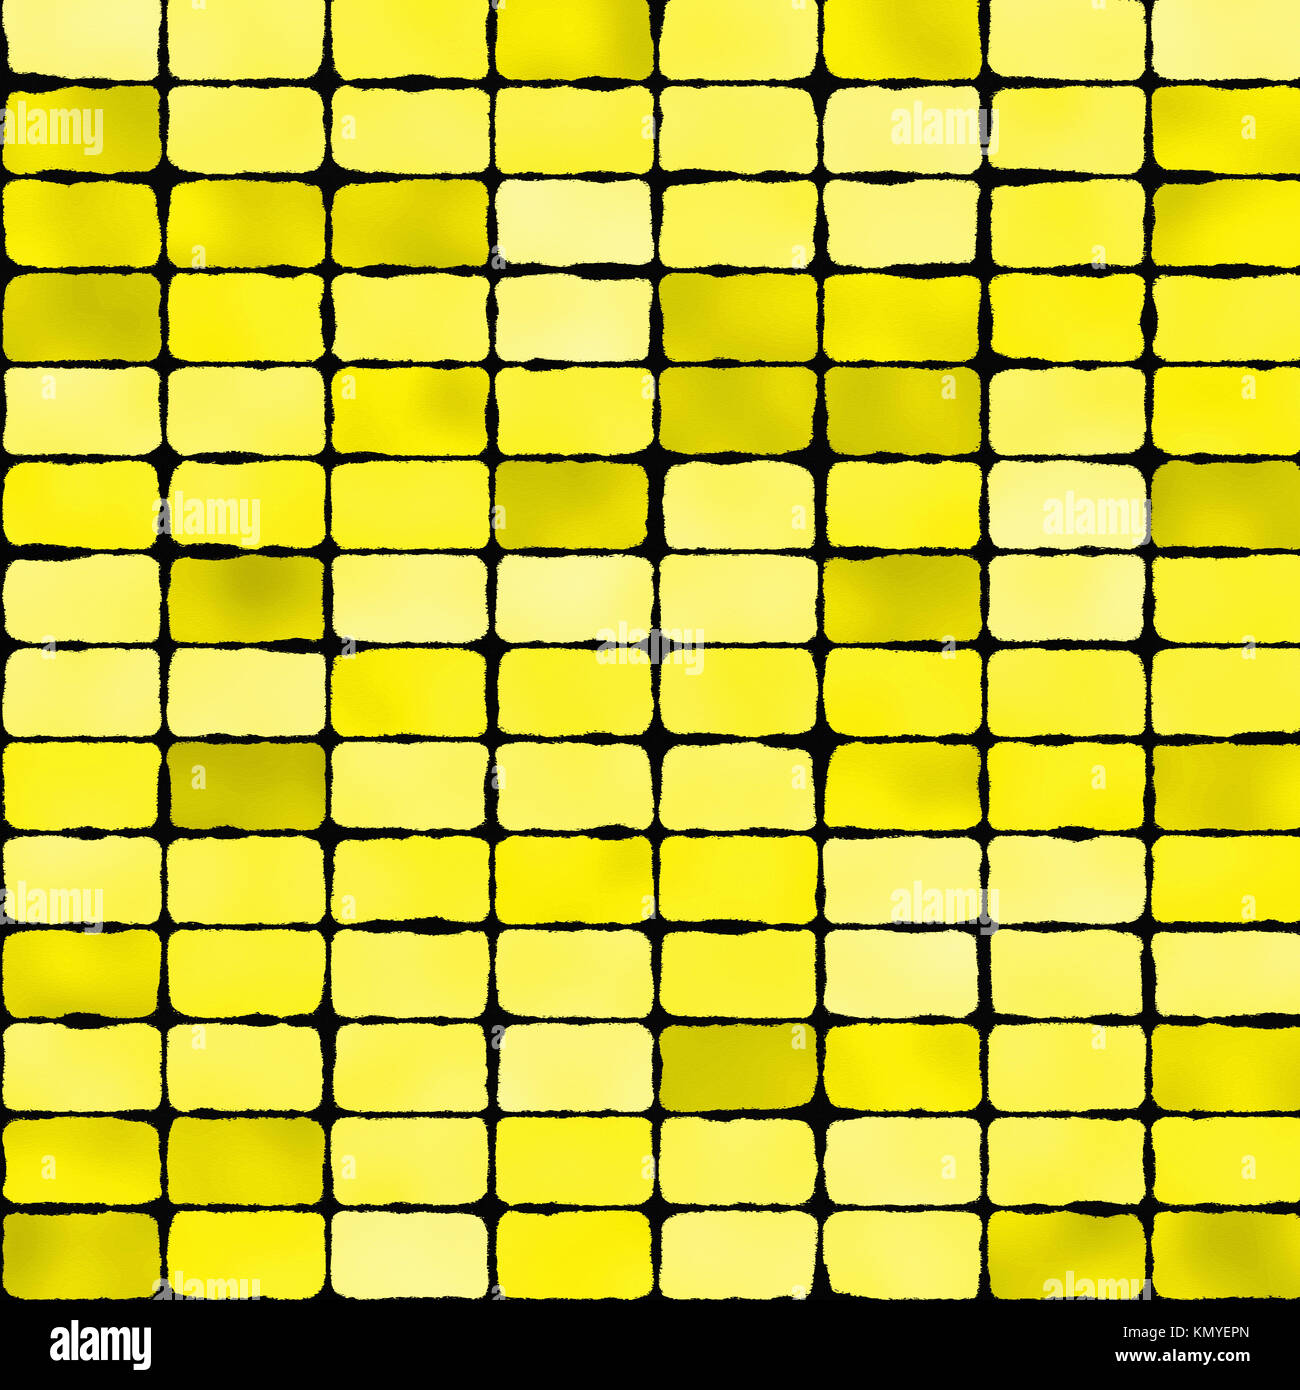 Yellow Tiles Mosaic Random Pattern 28 Images Yellow